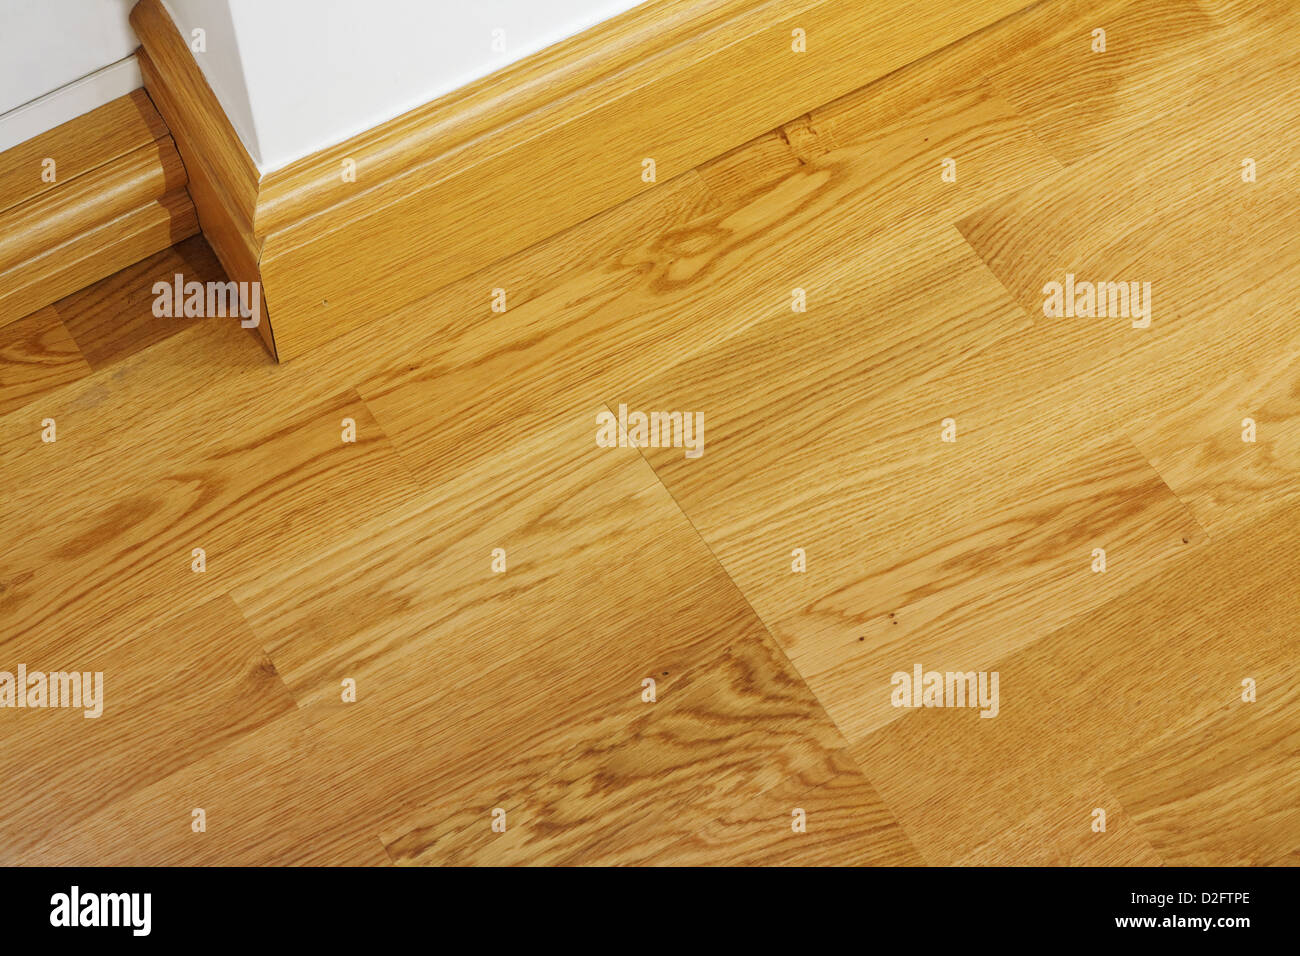 Close Up Showing Some Laminate Flooring And Mdf Imitation Wood Skirting Boards In Newly Constructed House